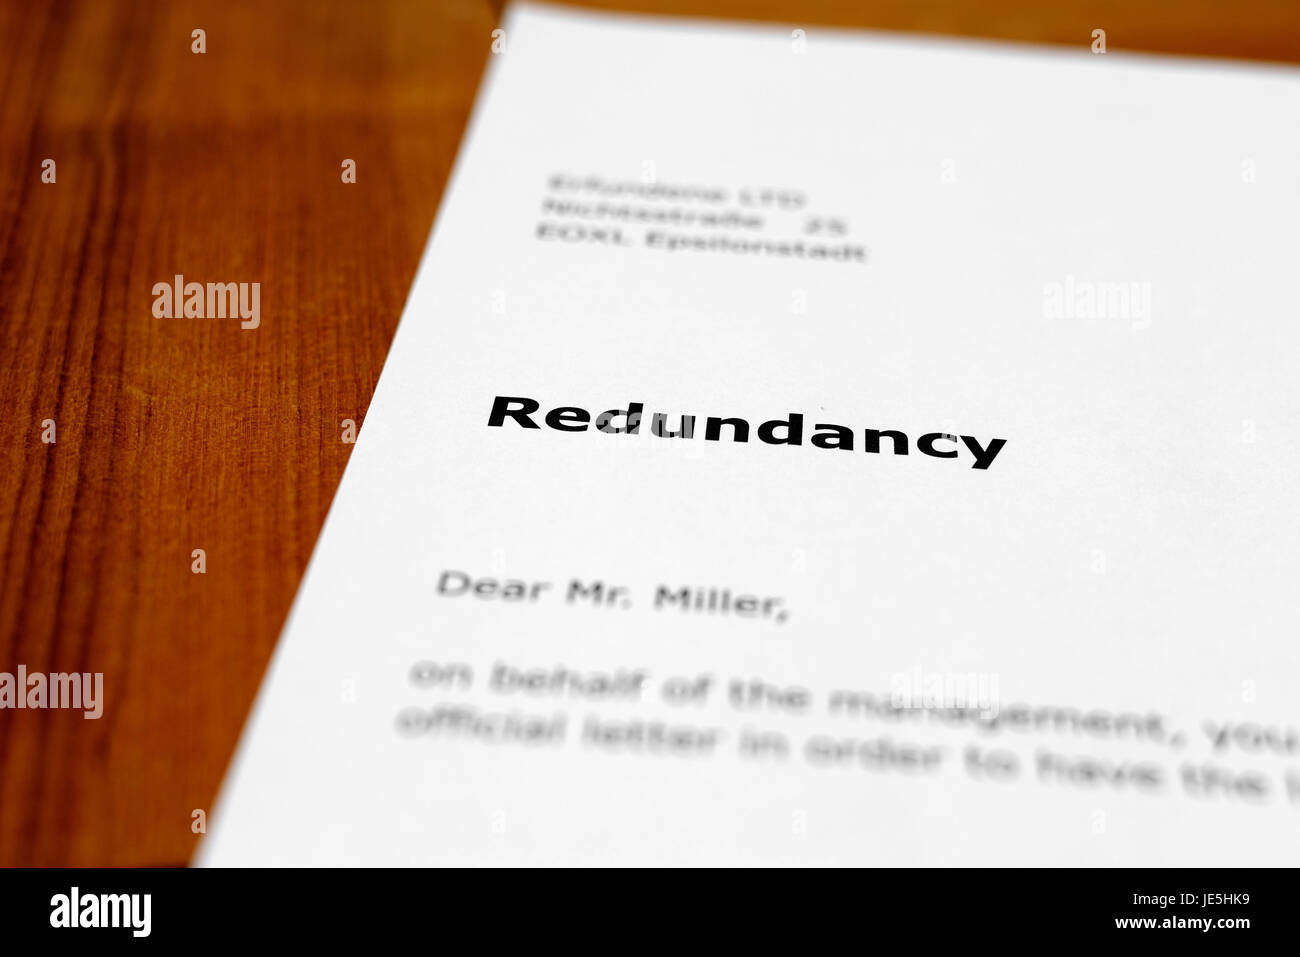 A letter on a wooden table - redundancy - Stock Image